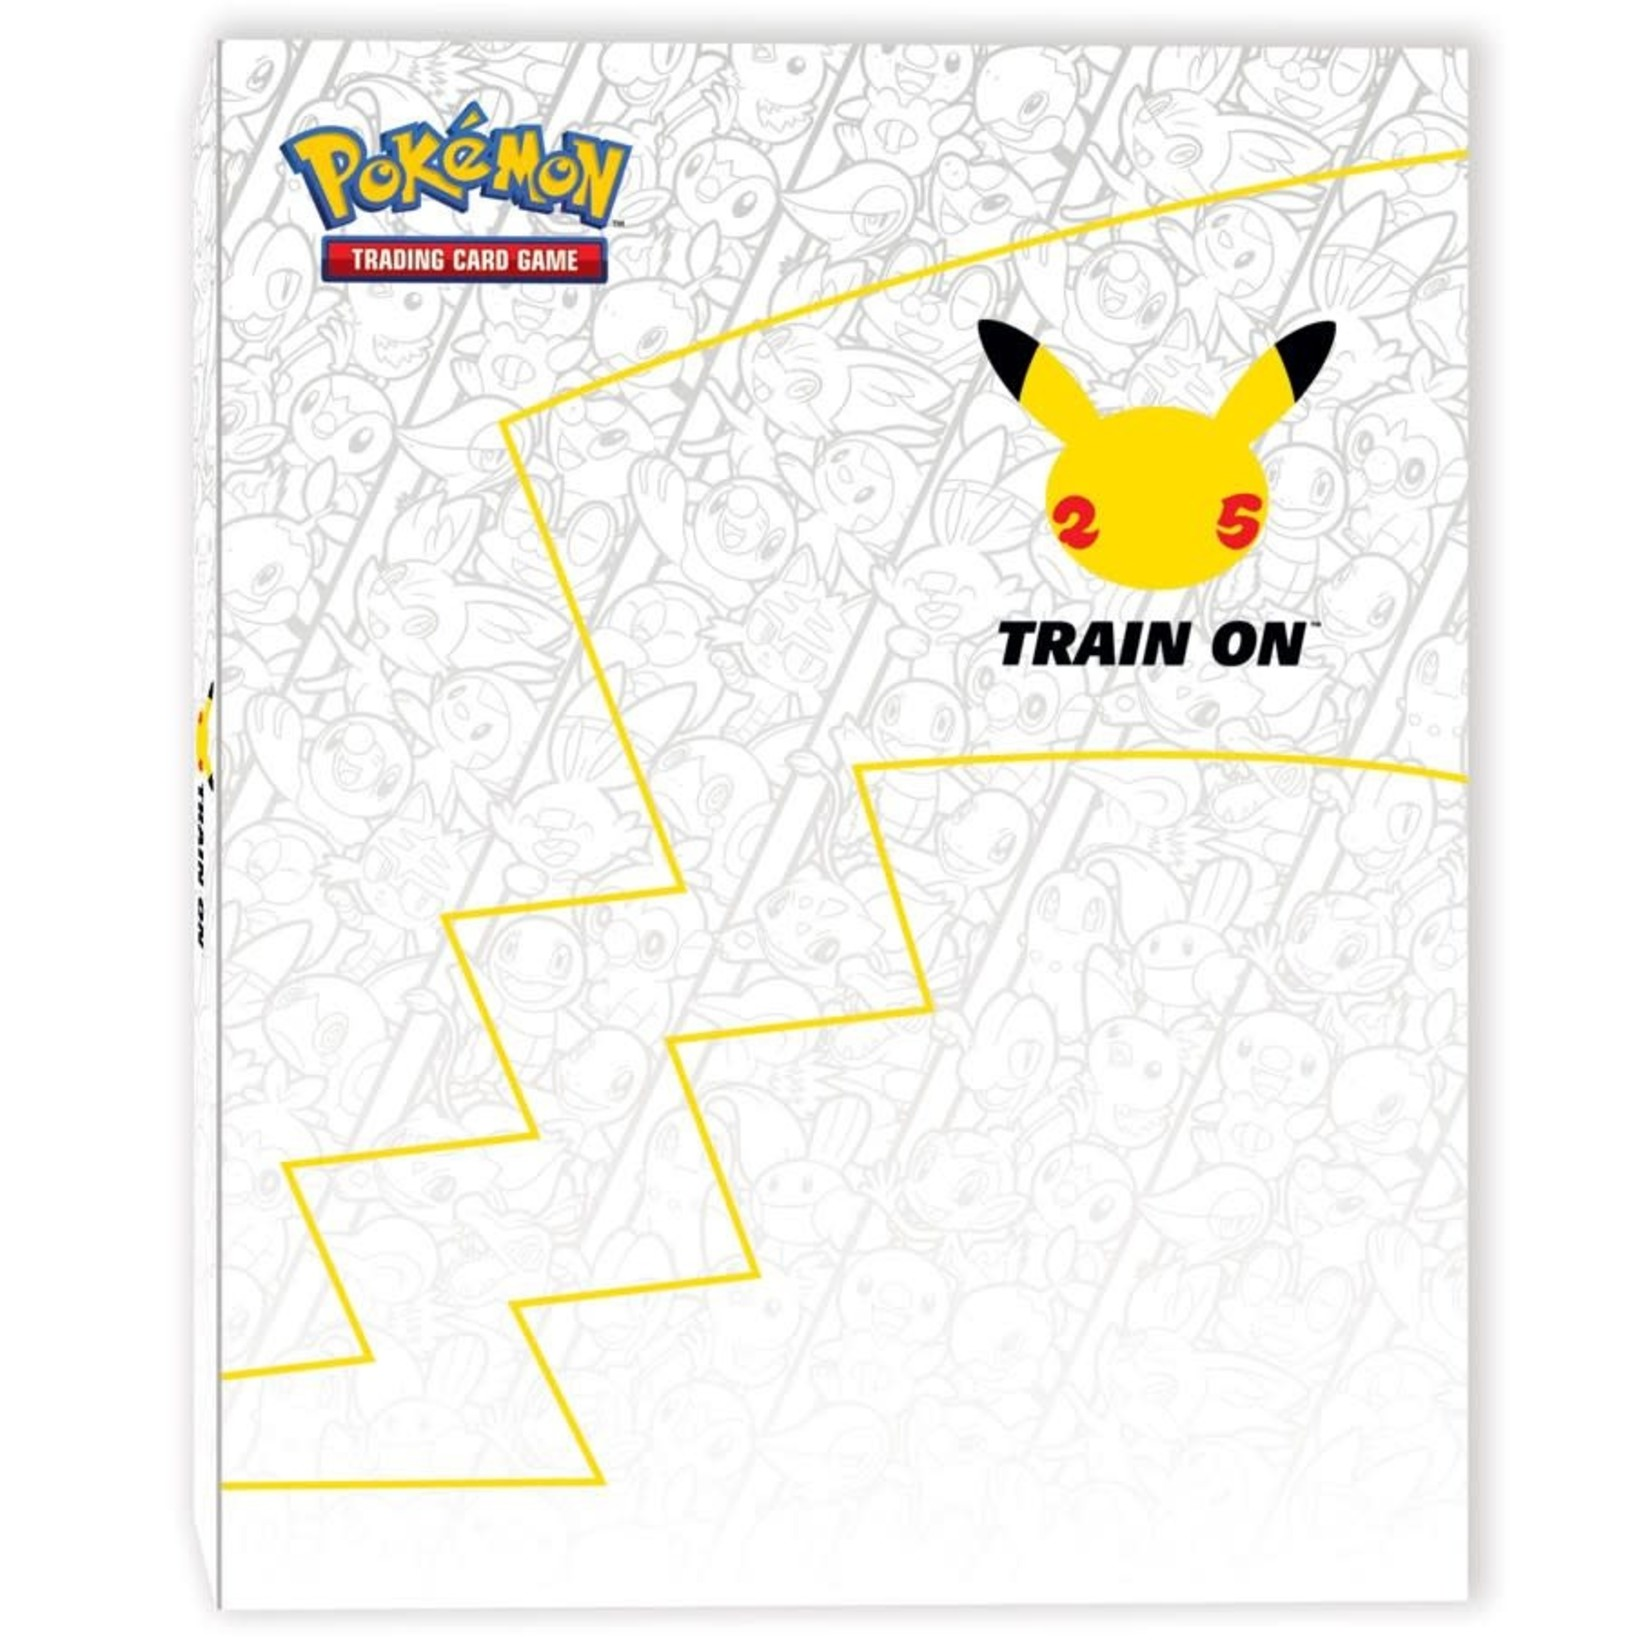 Pokémon Pokémon Trading Card Game: First Partner Collector's Binder